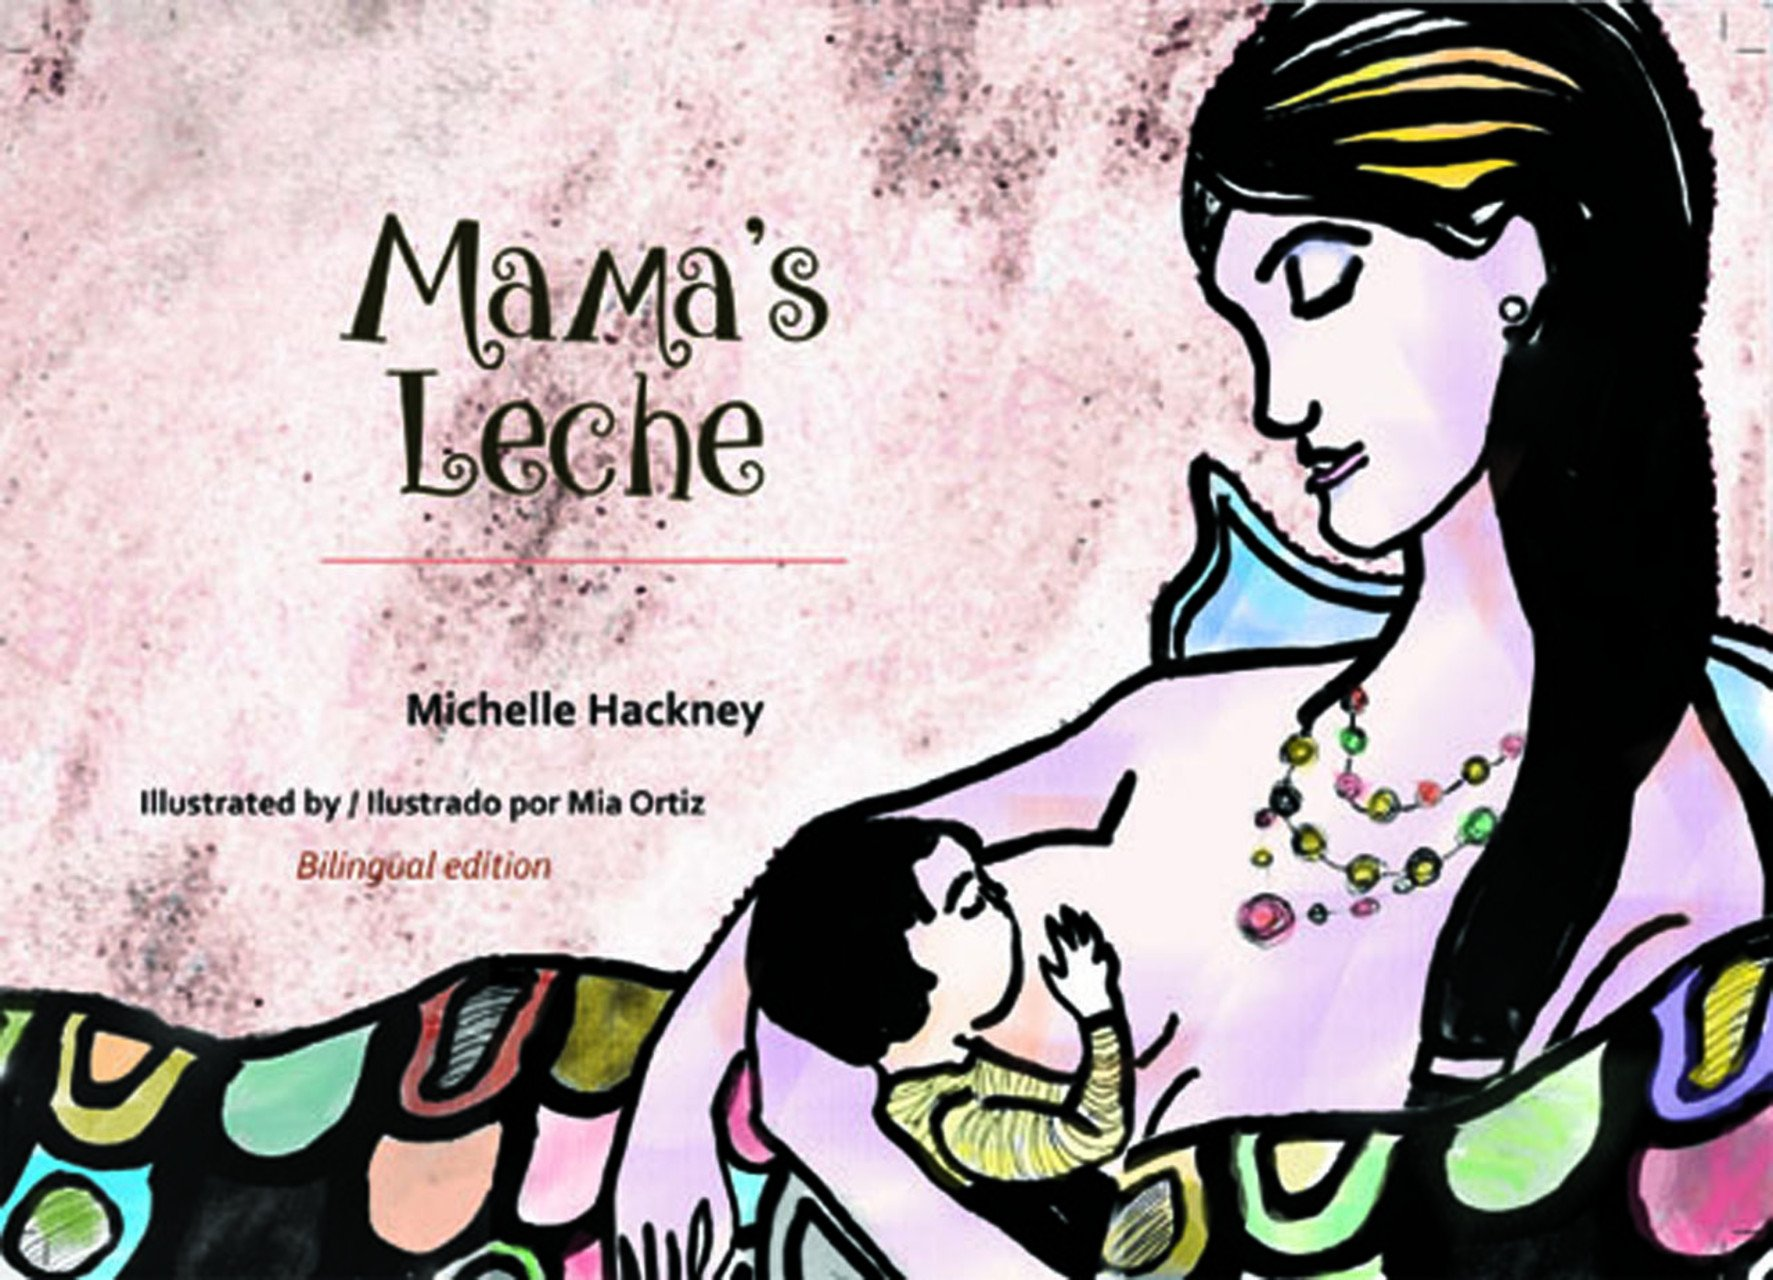 Mamas leche family and world health english and spanish edition mamas leche family and world health english and spanish edition michelle hackney mia ortiz 9781942493242 amazon books fandeluxe Image collections